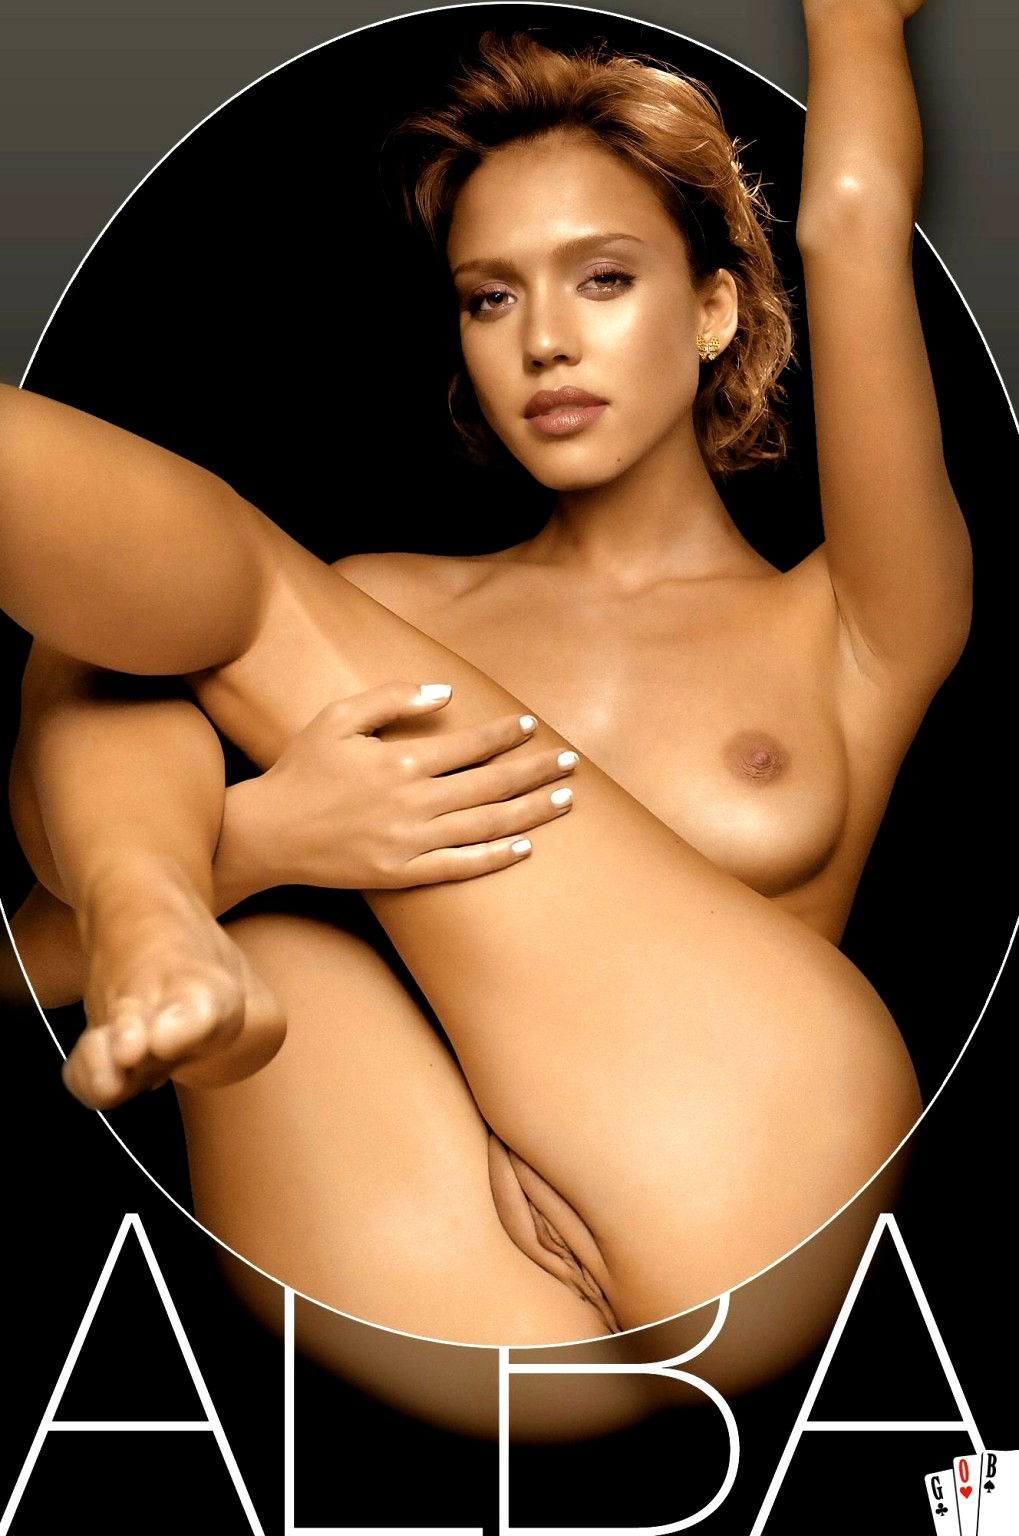 jessica-alba-sexs-hot-full-figured-nude-women